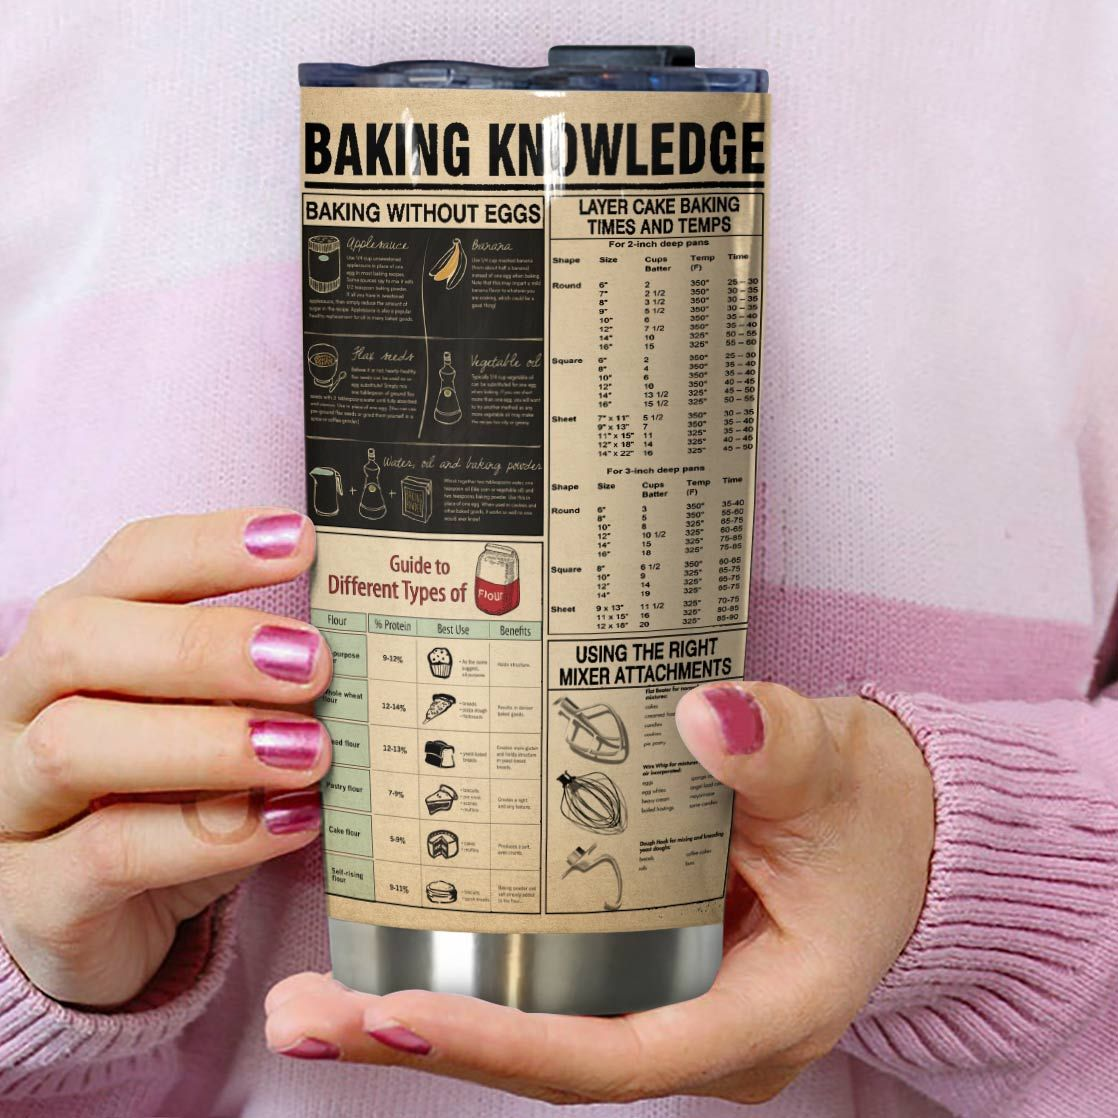 Baking is my therapy baking knowledge full over print tumbler 2